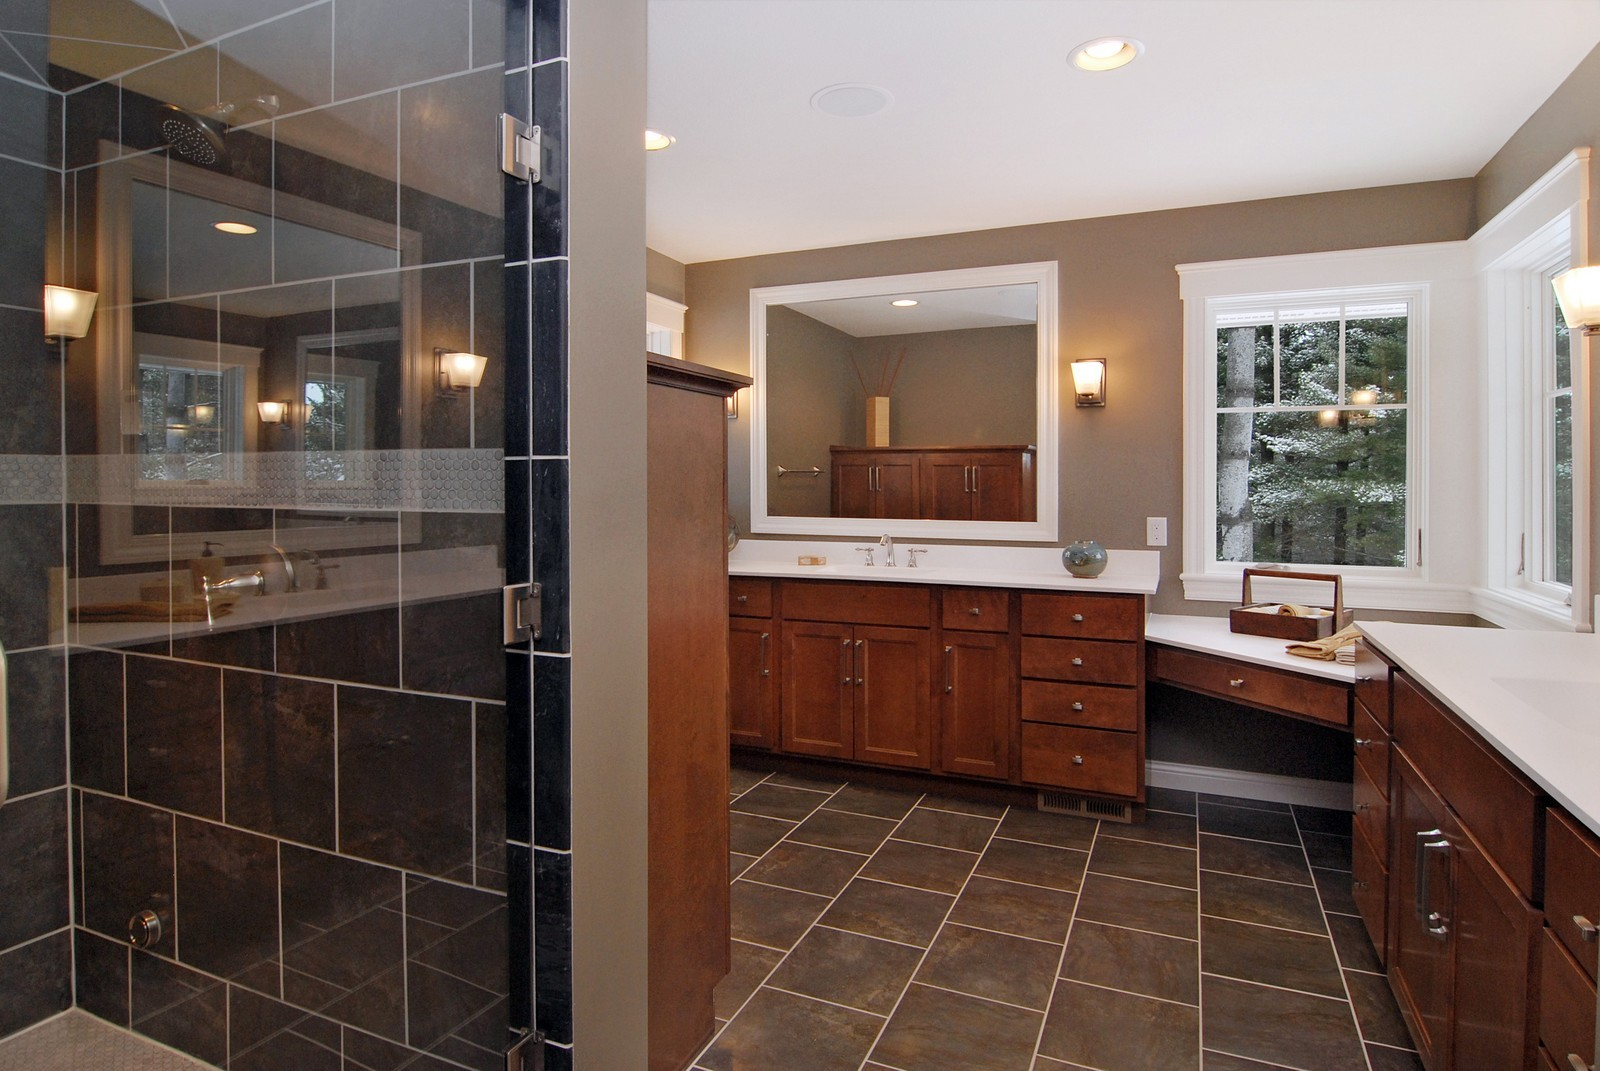 Real Estate Photography - 13220 24th Street North, West Lakeland, MN, 55082 - Master Bathroom